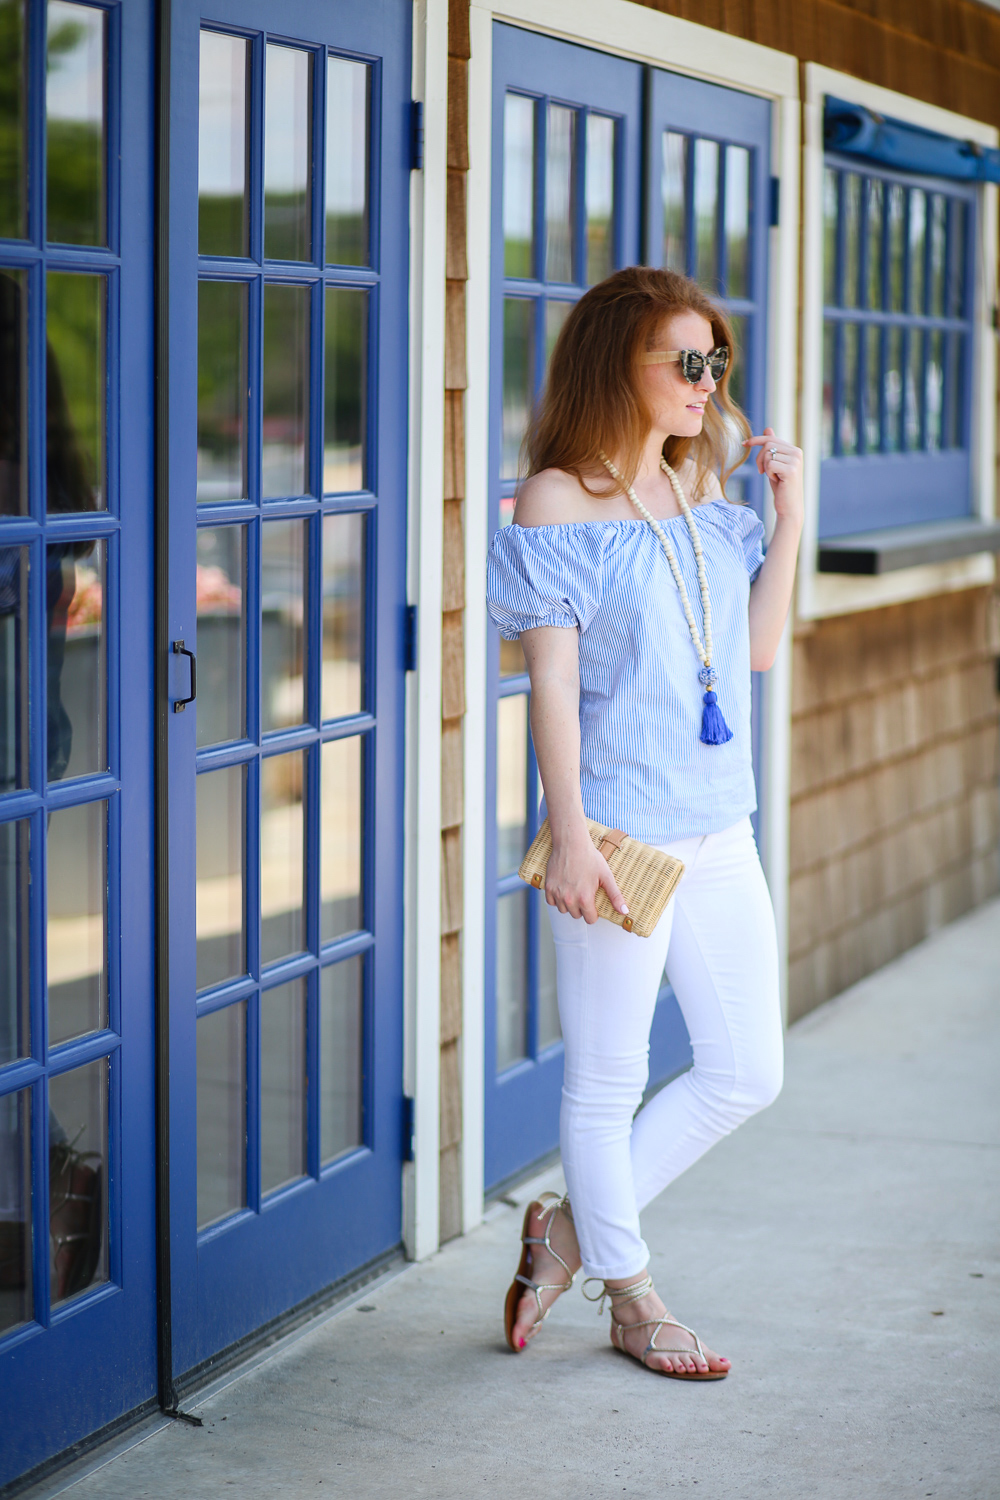 cade98b0216d Seersucker off the shoulder top with white skinny jeans and steve madden  werkit gladiator sandals in